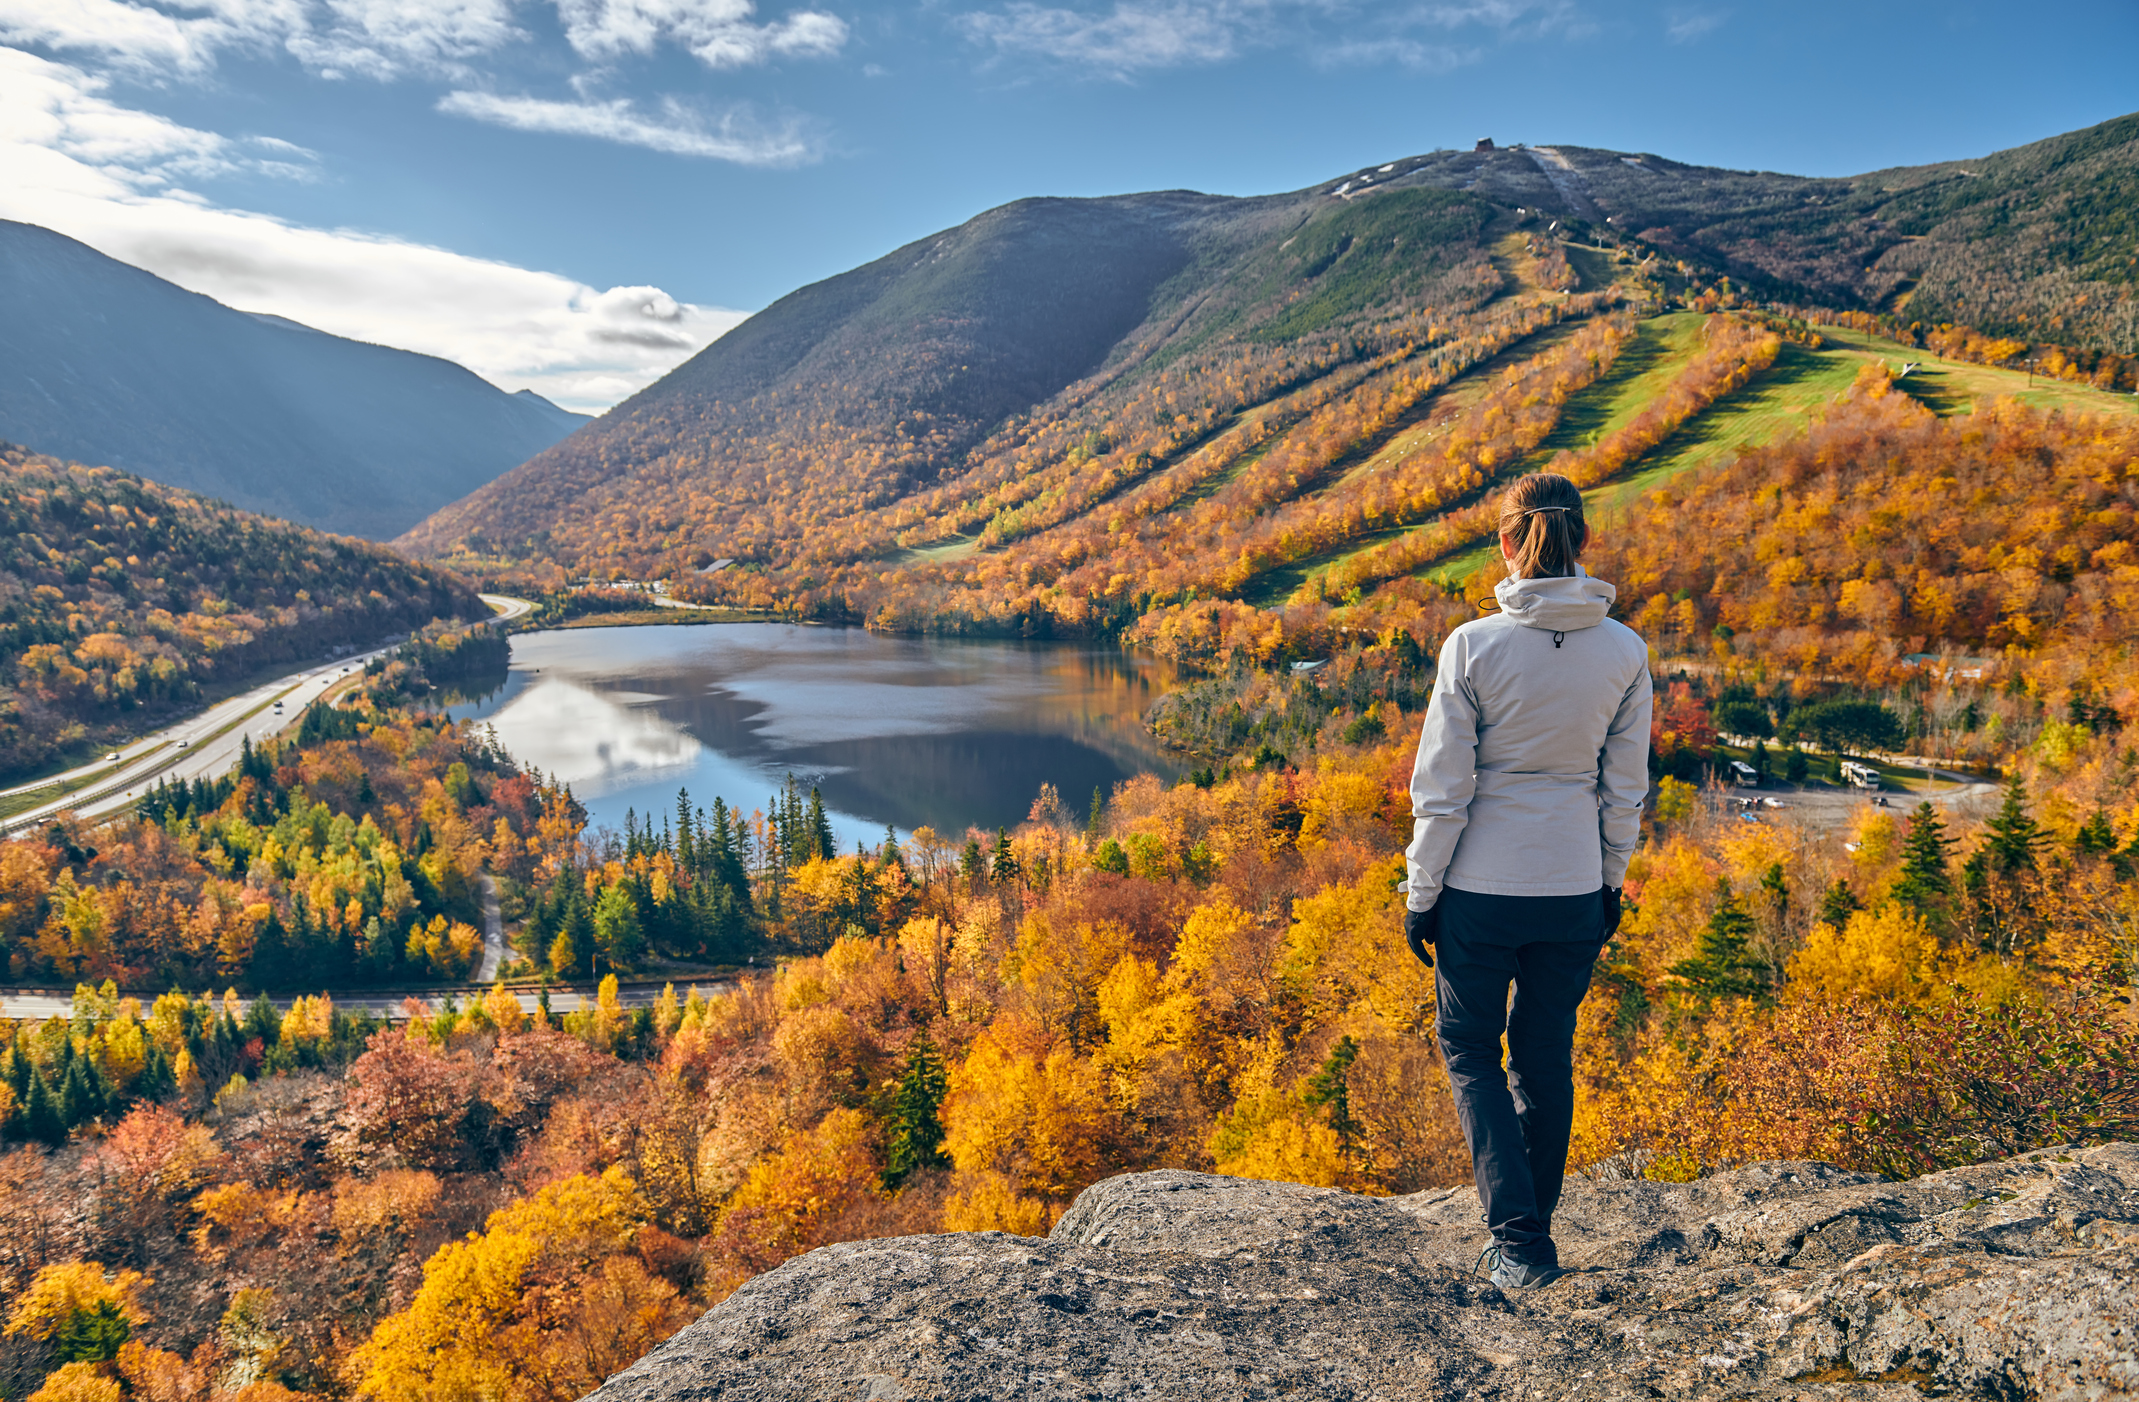 Woman hikes in fall landscape.